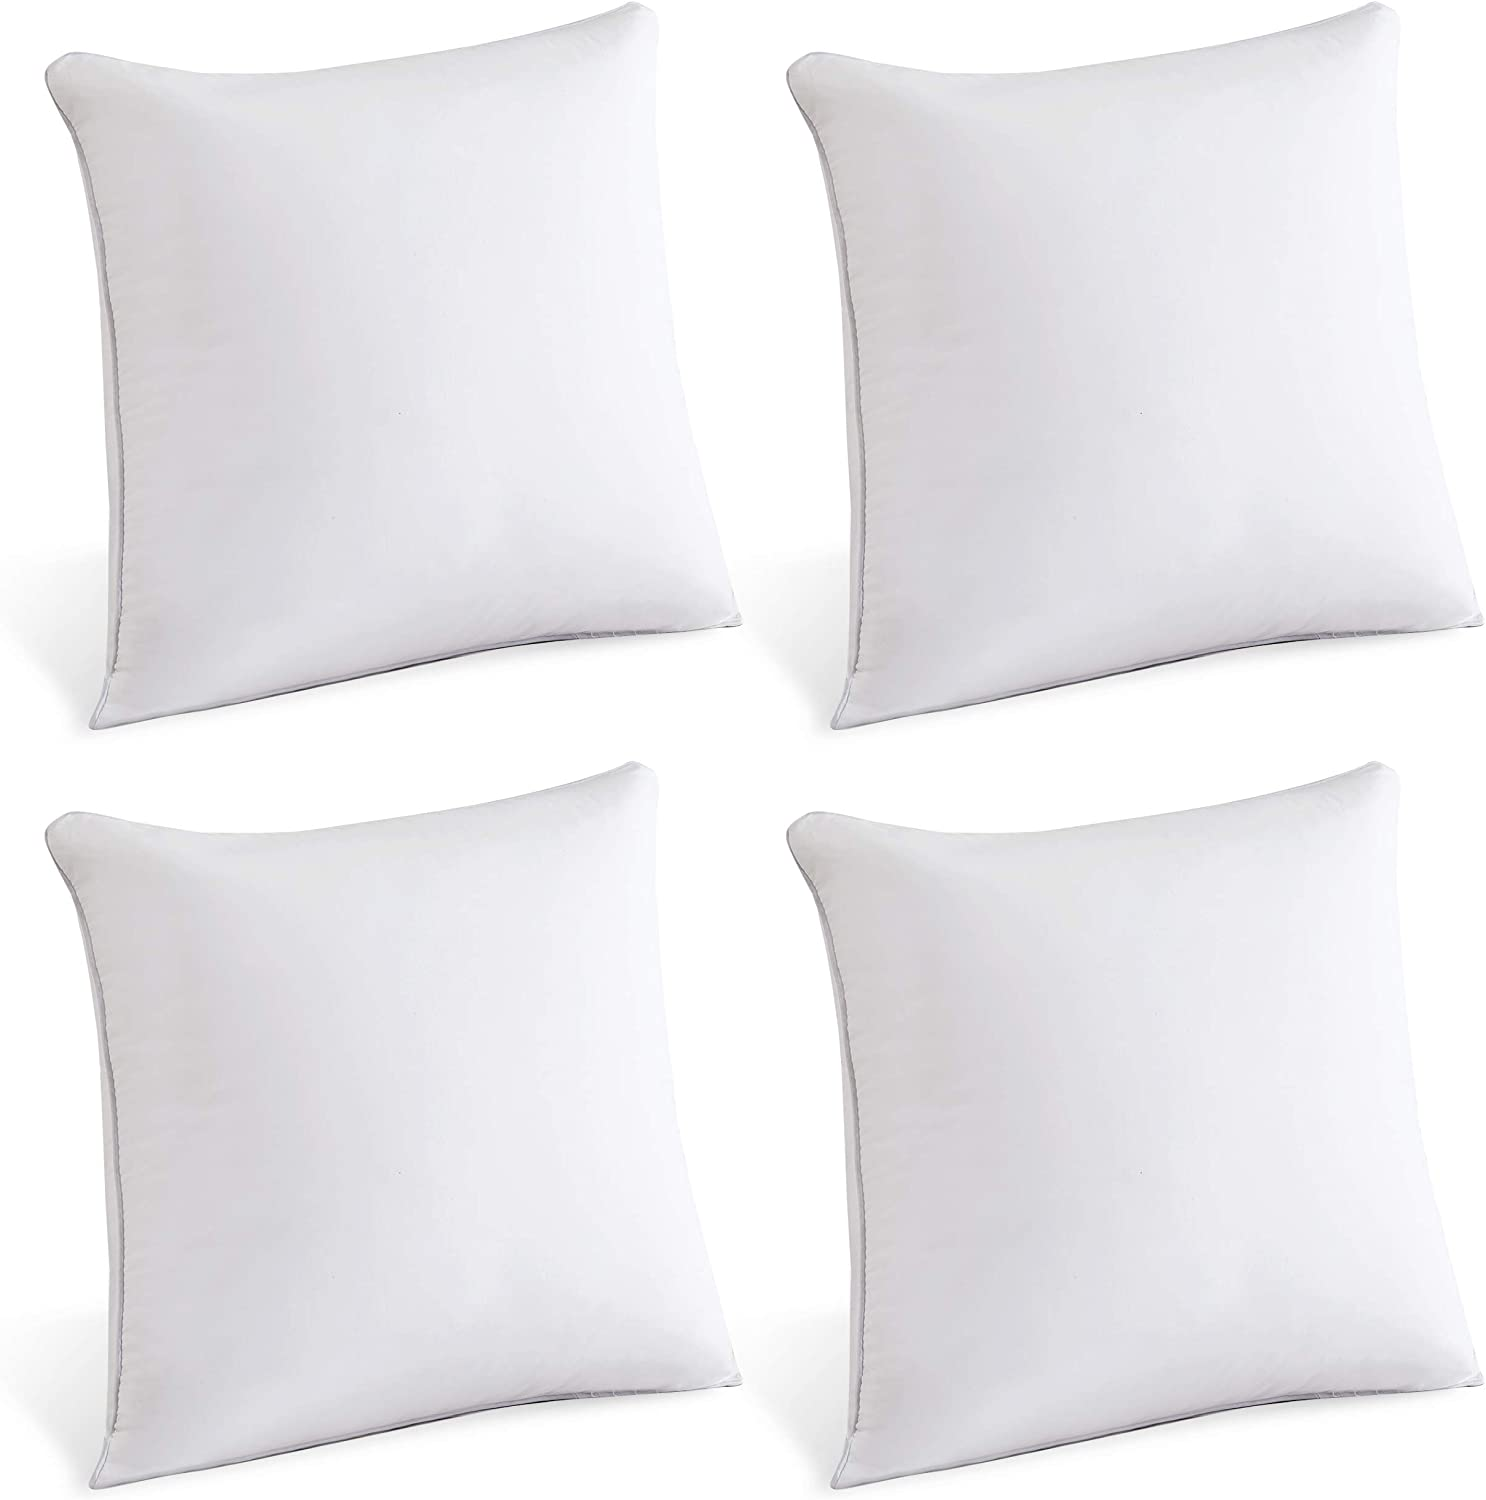 Decorative Pillow Insert Pair White Couch Pillow Set Of 4 Moma 18 X 18 Pillow Inserts 18 X 18 Throw Pillow Inserts With 100 Cotton Cover 18 Inch Square Interior Sofa Pillow Inserts